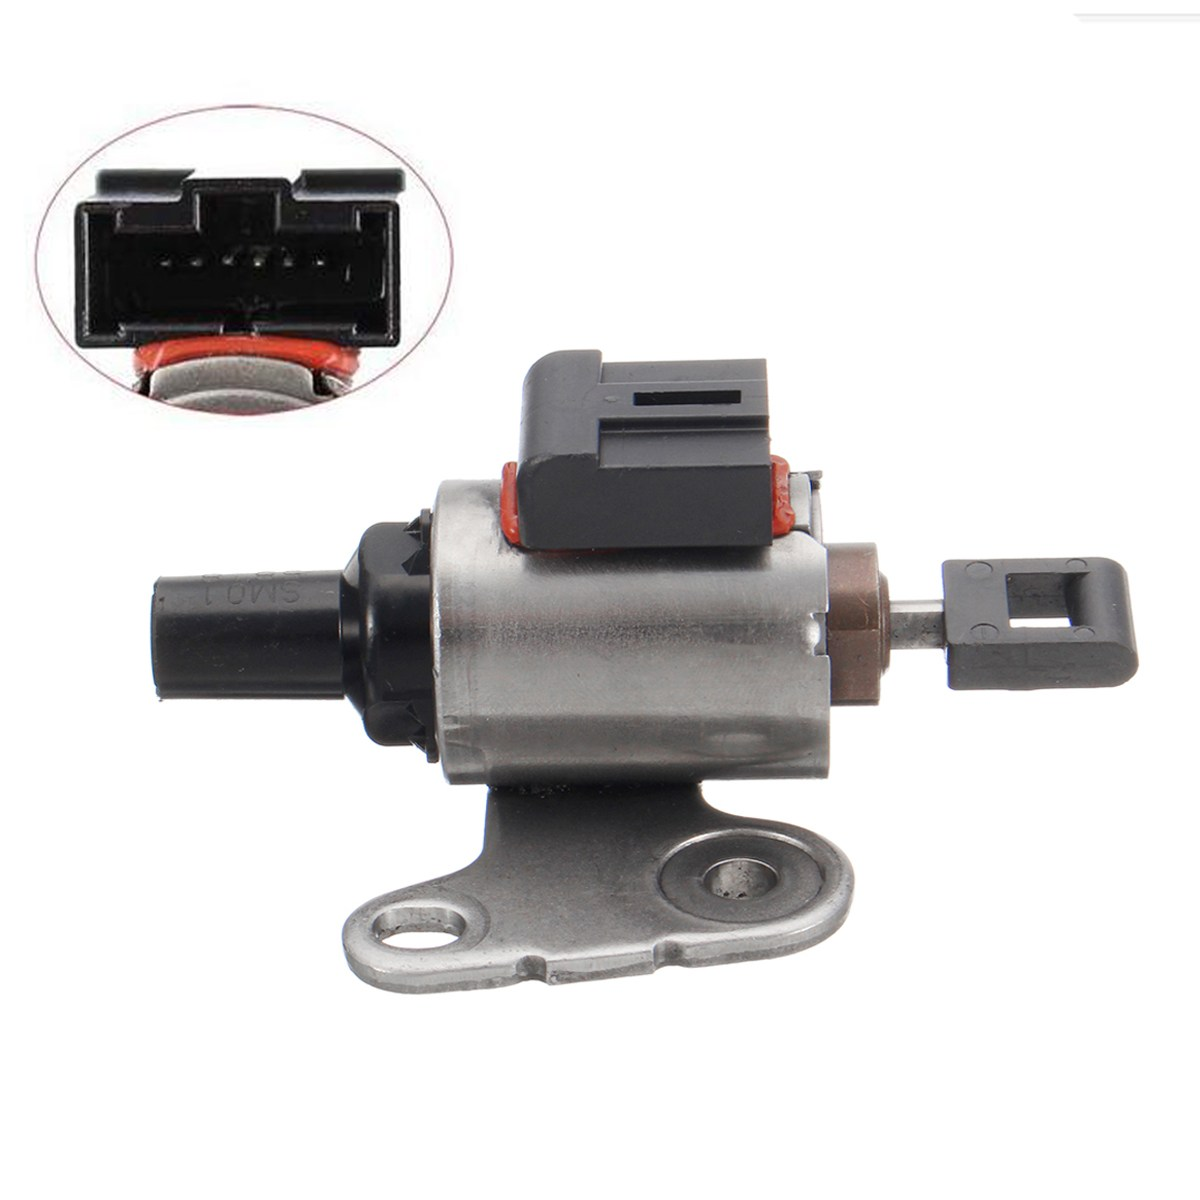 small resolution of jf009e re0f08a b cvt transmission step motor for nissan versa tilda latio 2006